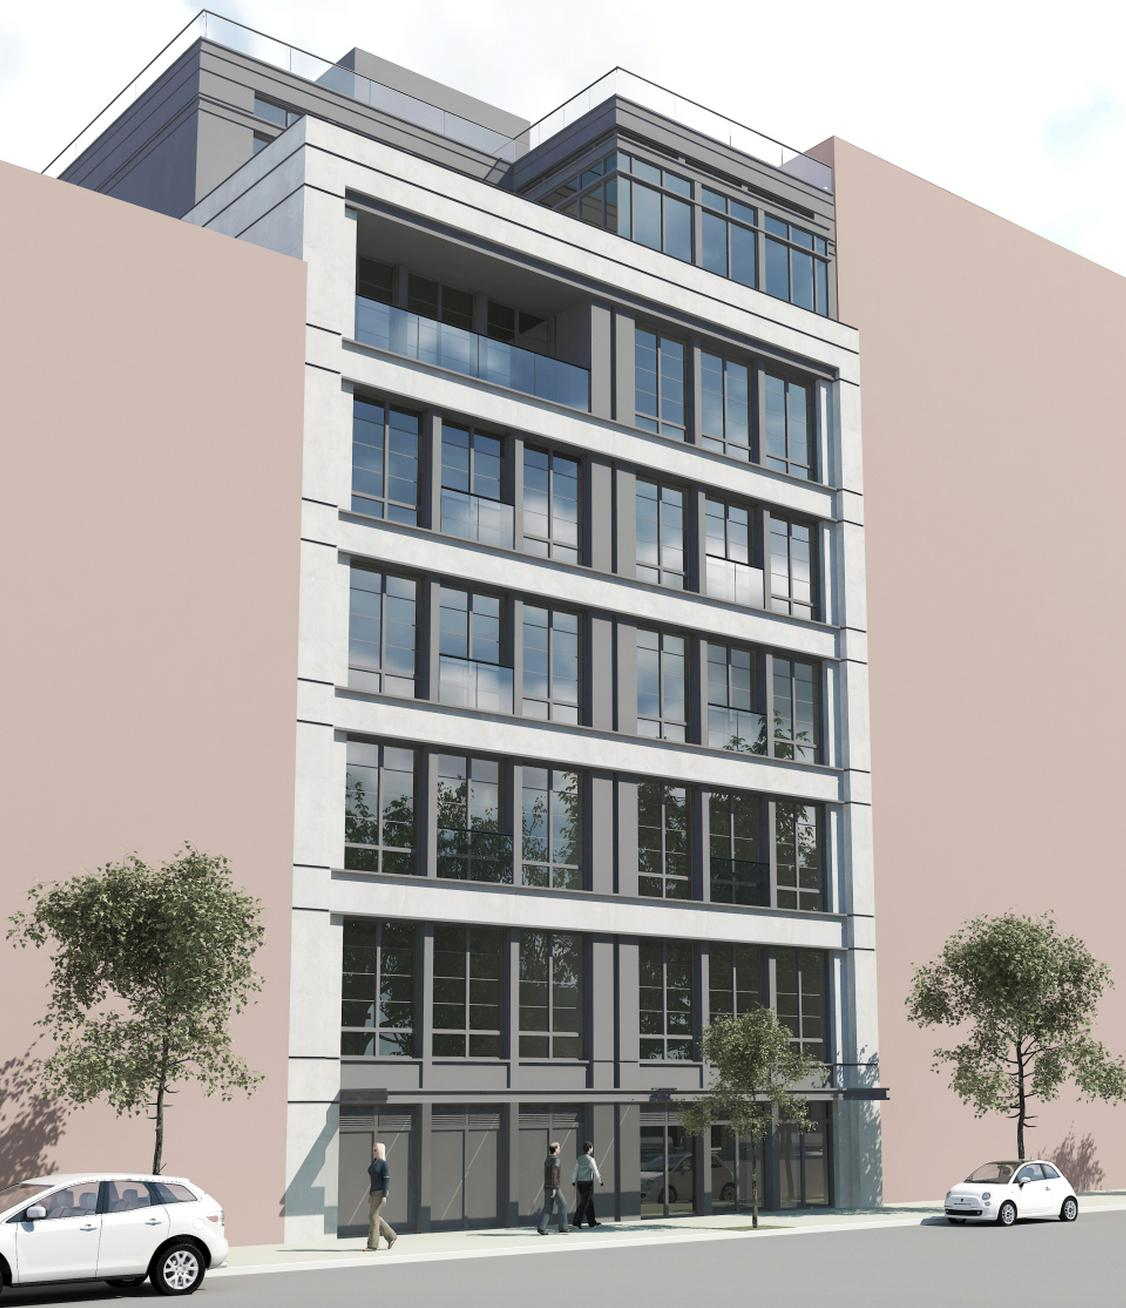 204 Forsyth Street, rendering by Z Architecture